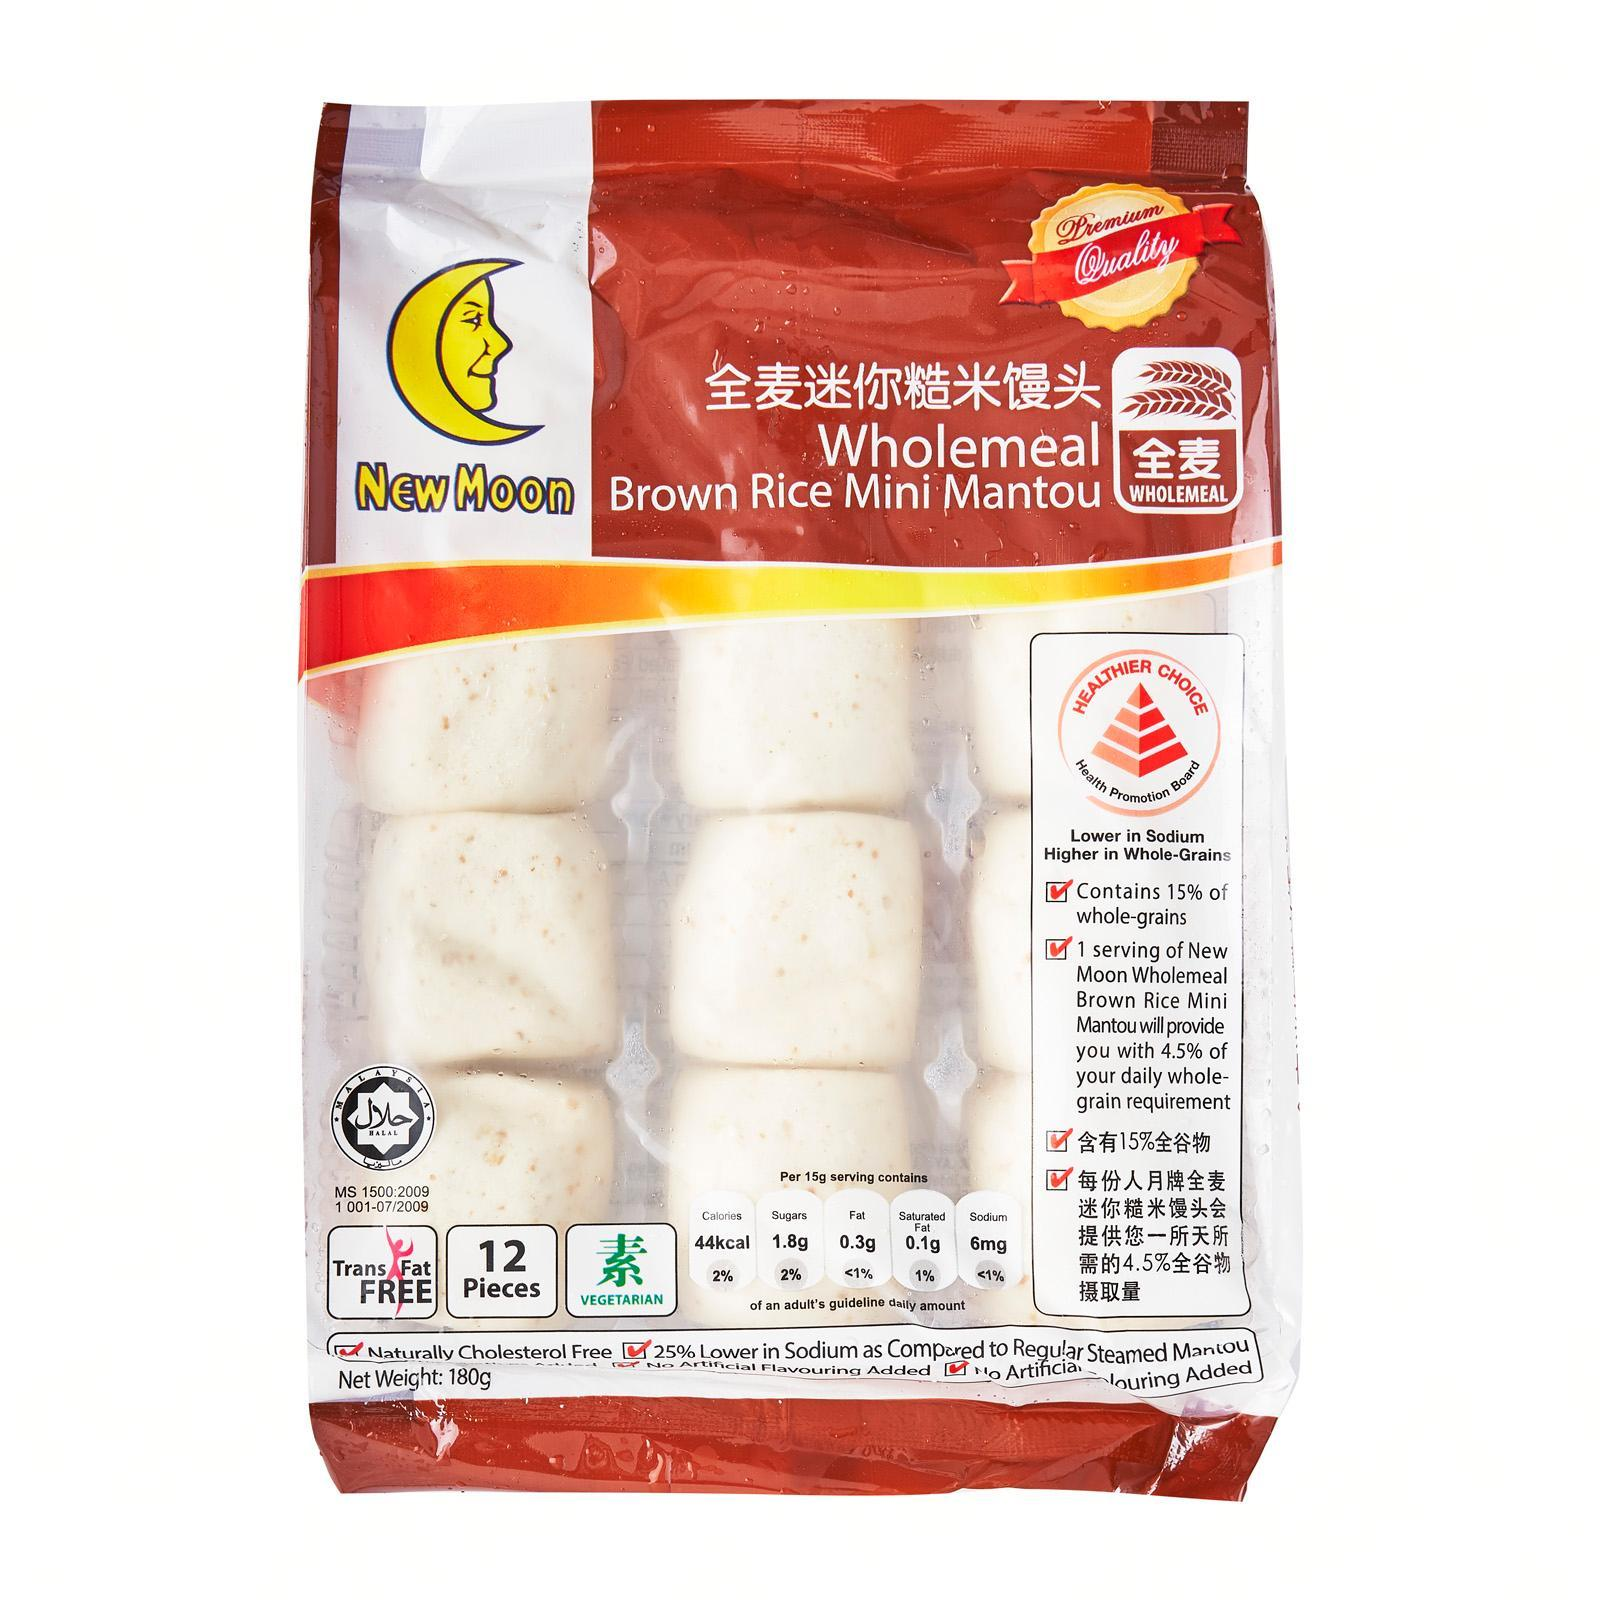 New Moon Wholemeal Brown Rice Mini Mantou - Frozen